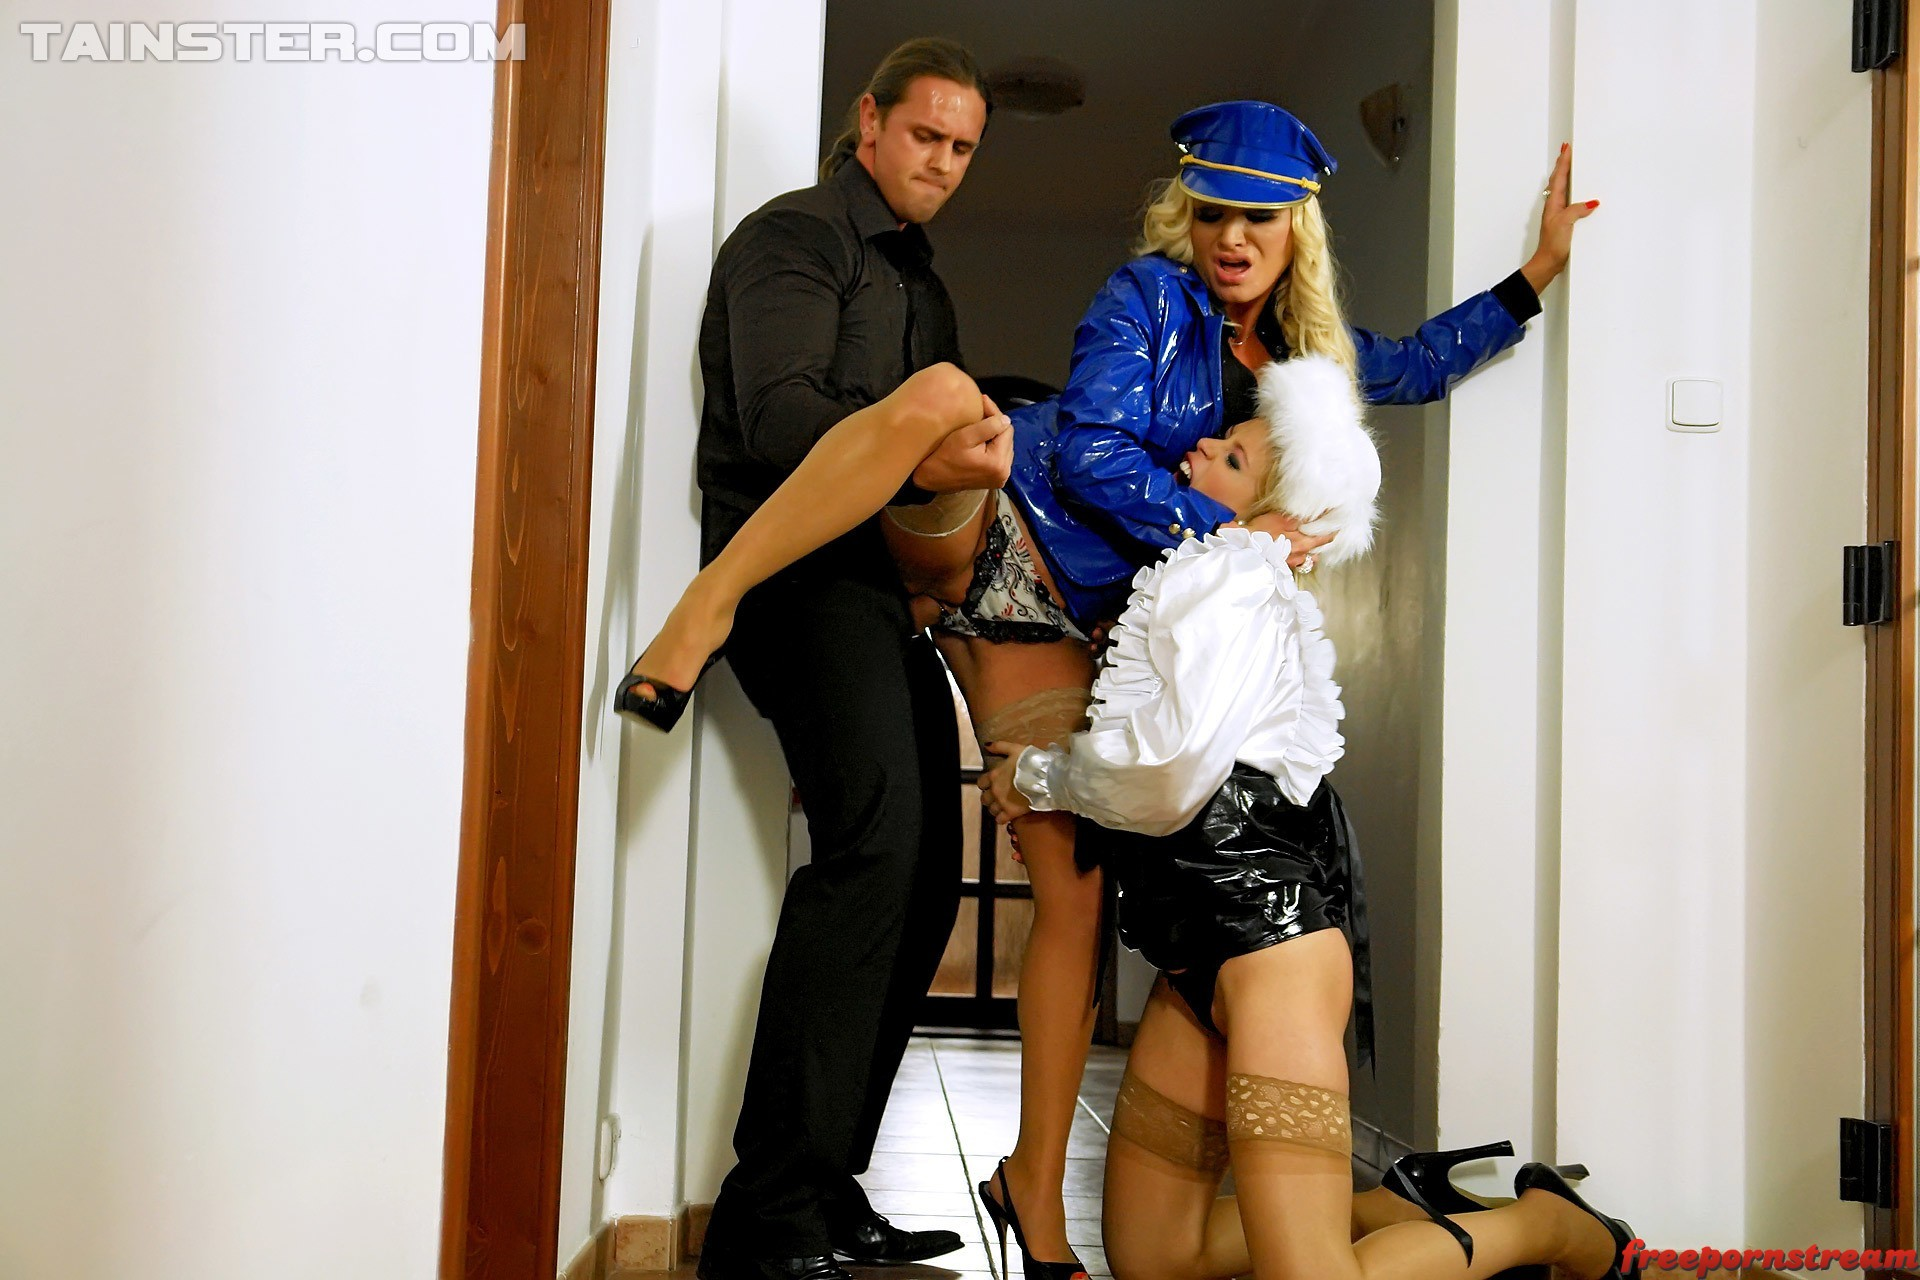 Fullyclothedsex.com – Roughing Up Fashion Fetishists Sharon Pink & Sweet  Cat 2013 Non-Nude